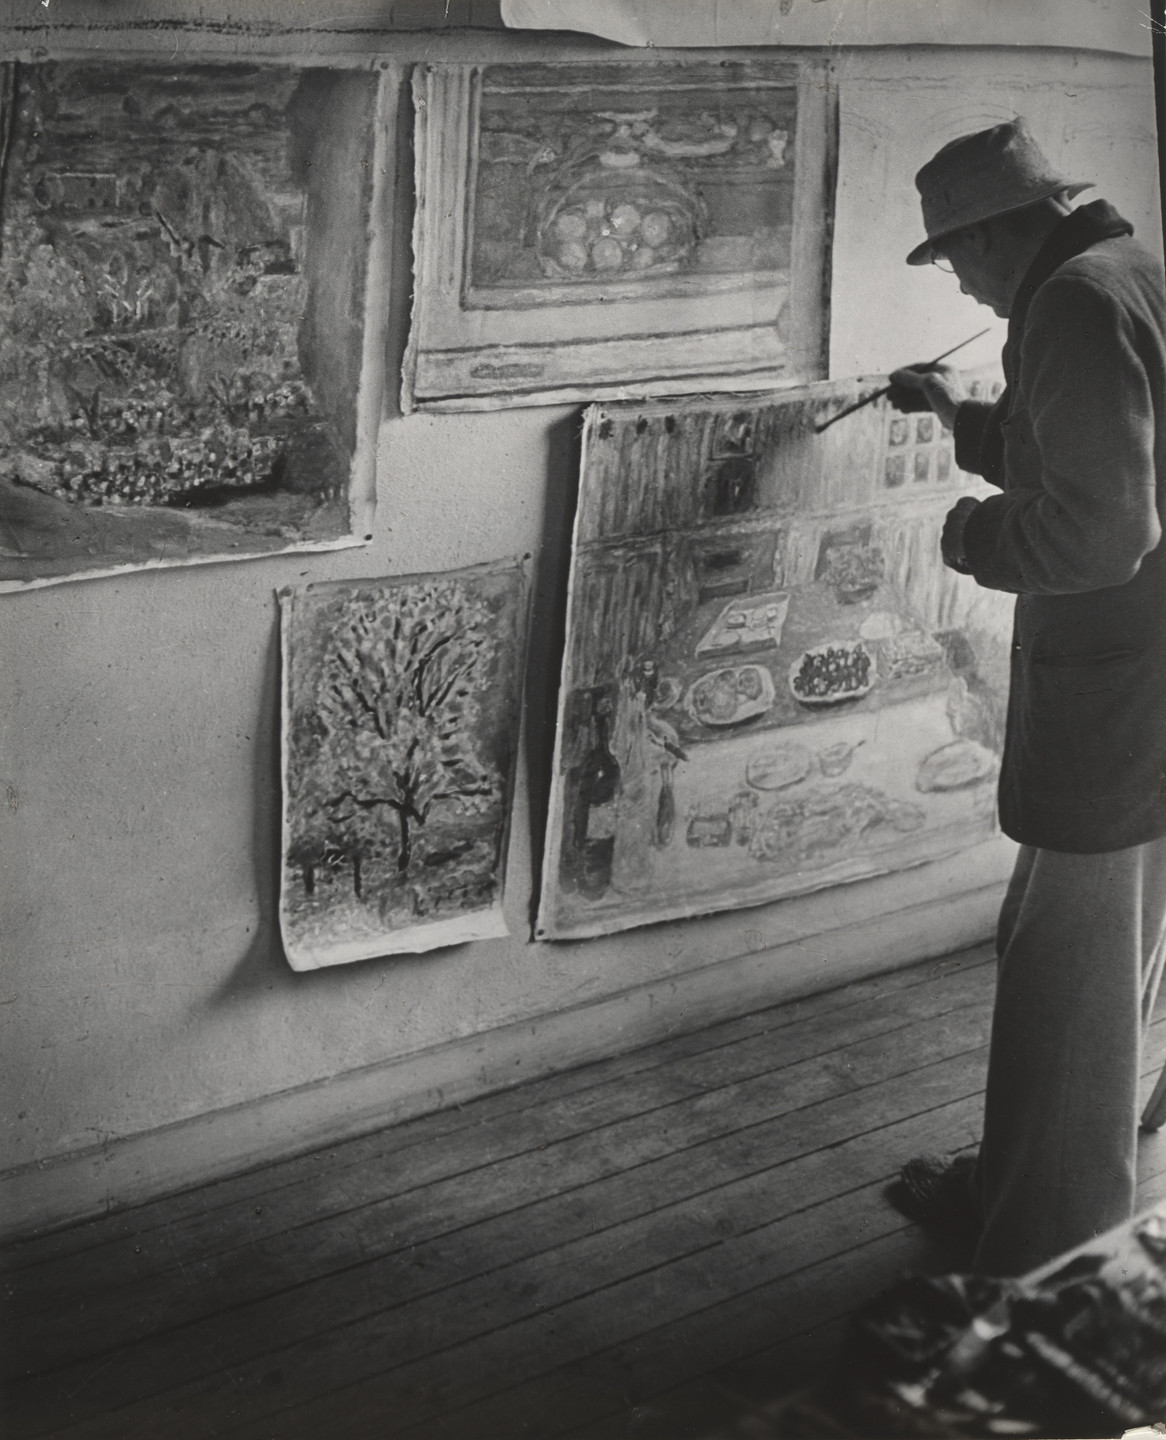 Brassaï (Gyula Halász). Pierre Bonnard in His Studio. (Bonnard dans son atelier, Le Cannet). 1946